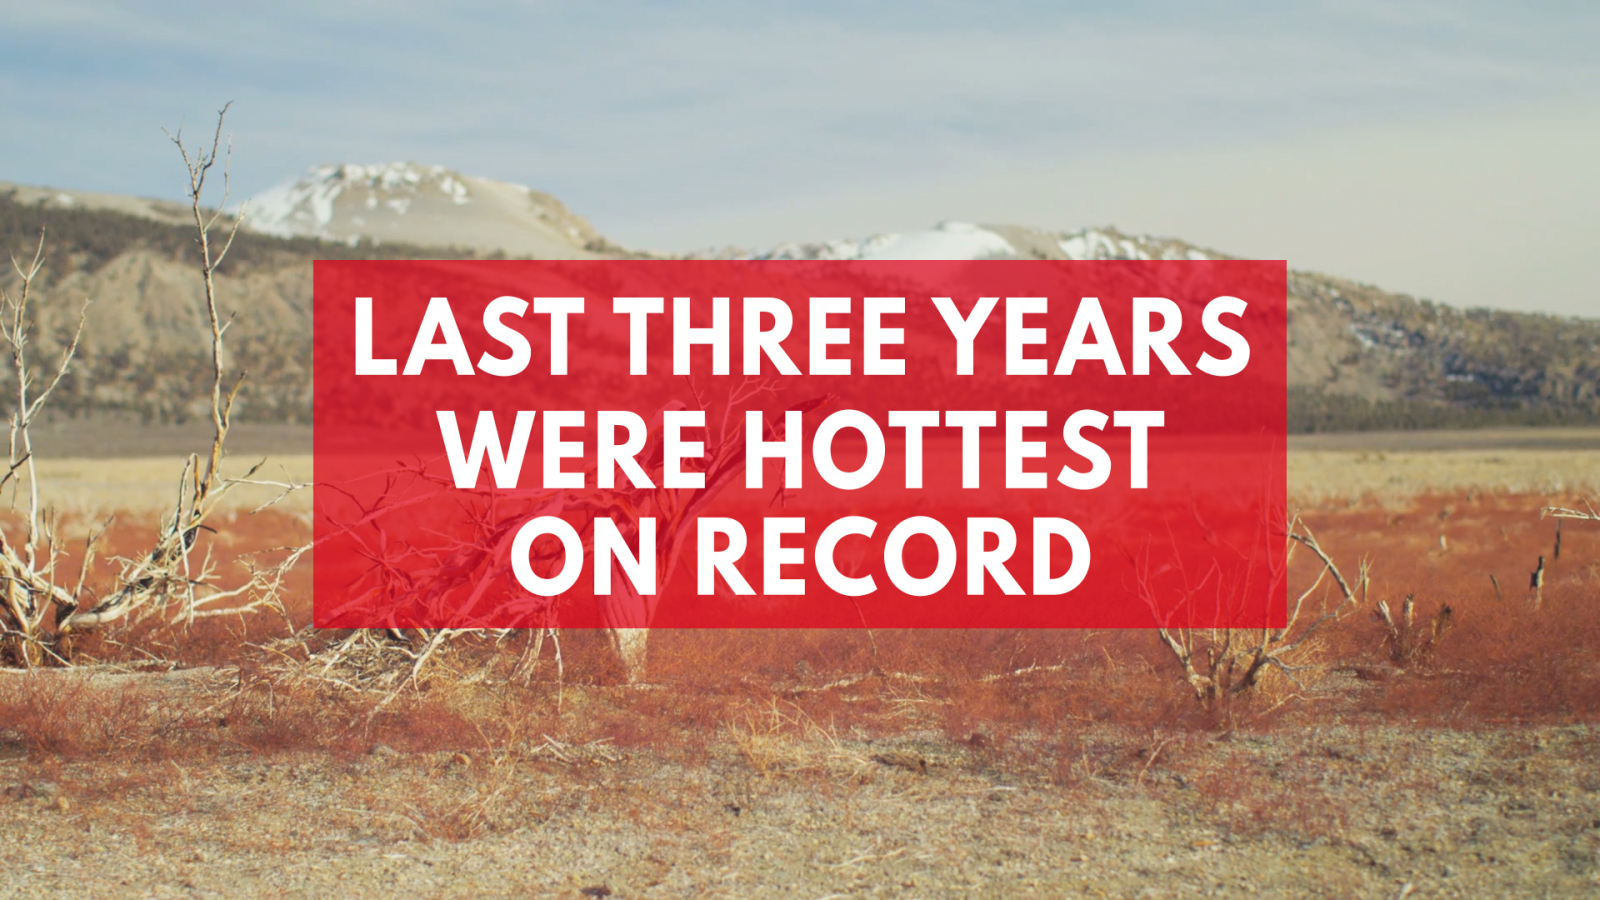 united-nations-last-three-years-were-hottest-on-record